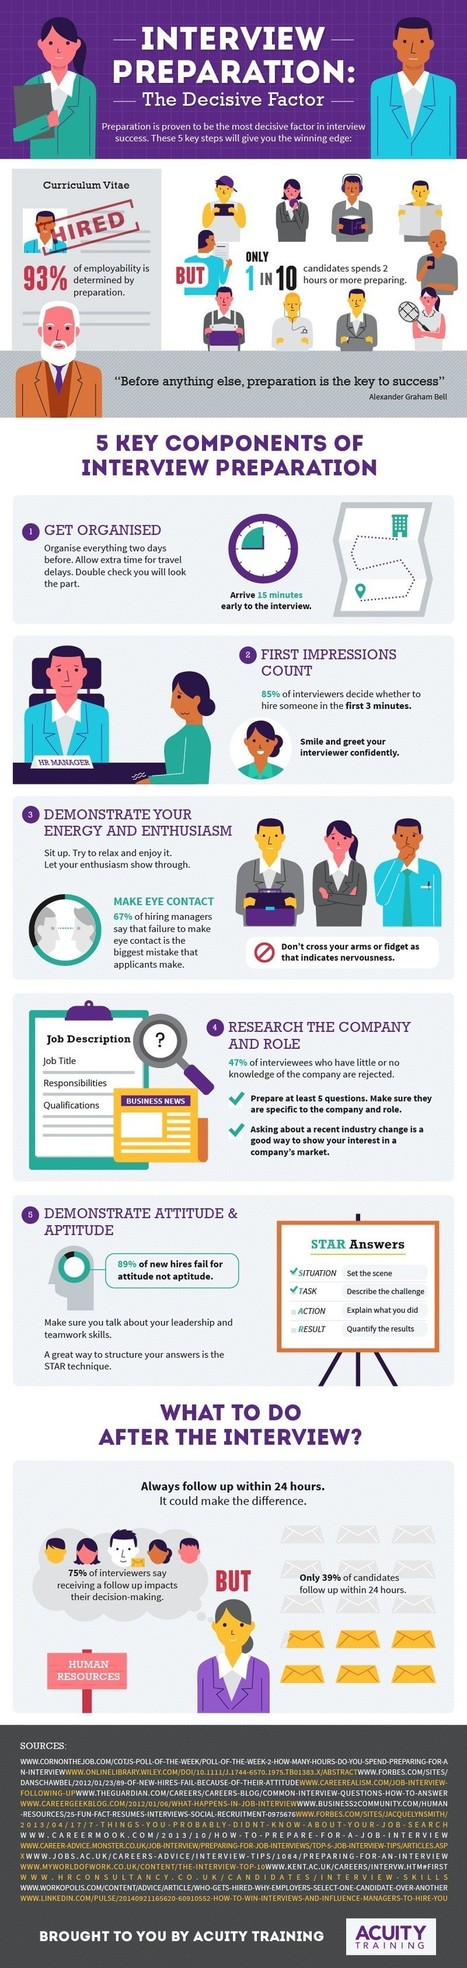 Top 5 Best Interview Preparation Tips Online | All Infographics | Scoop.it